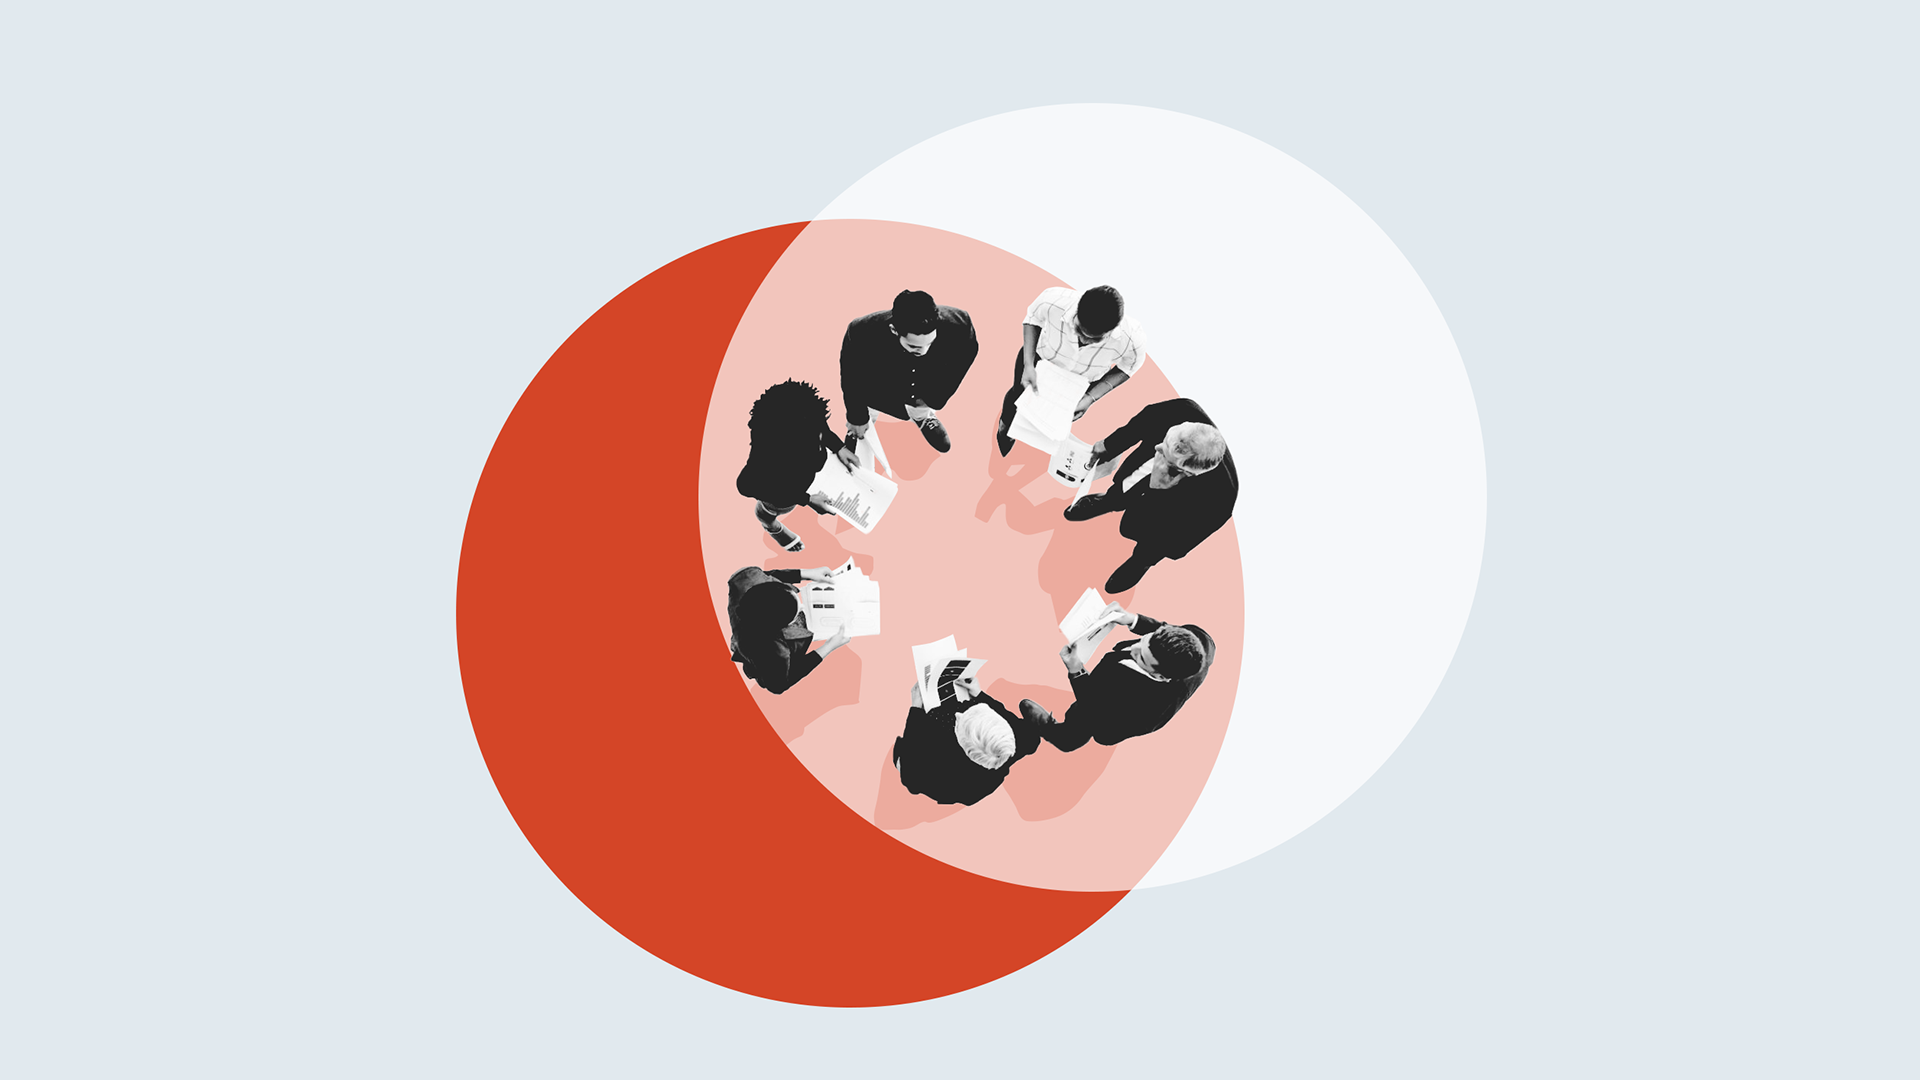 Illustration of coworkers standing in a circle